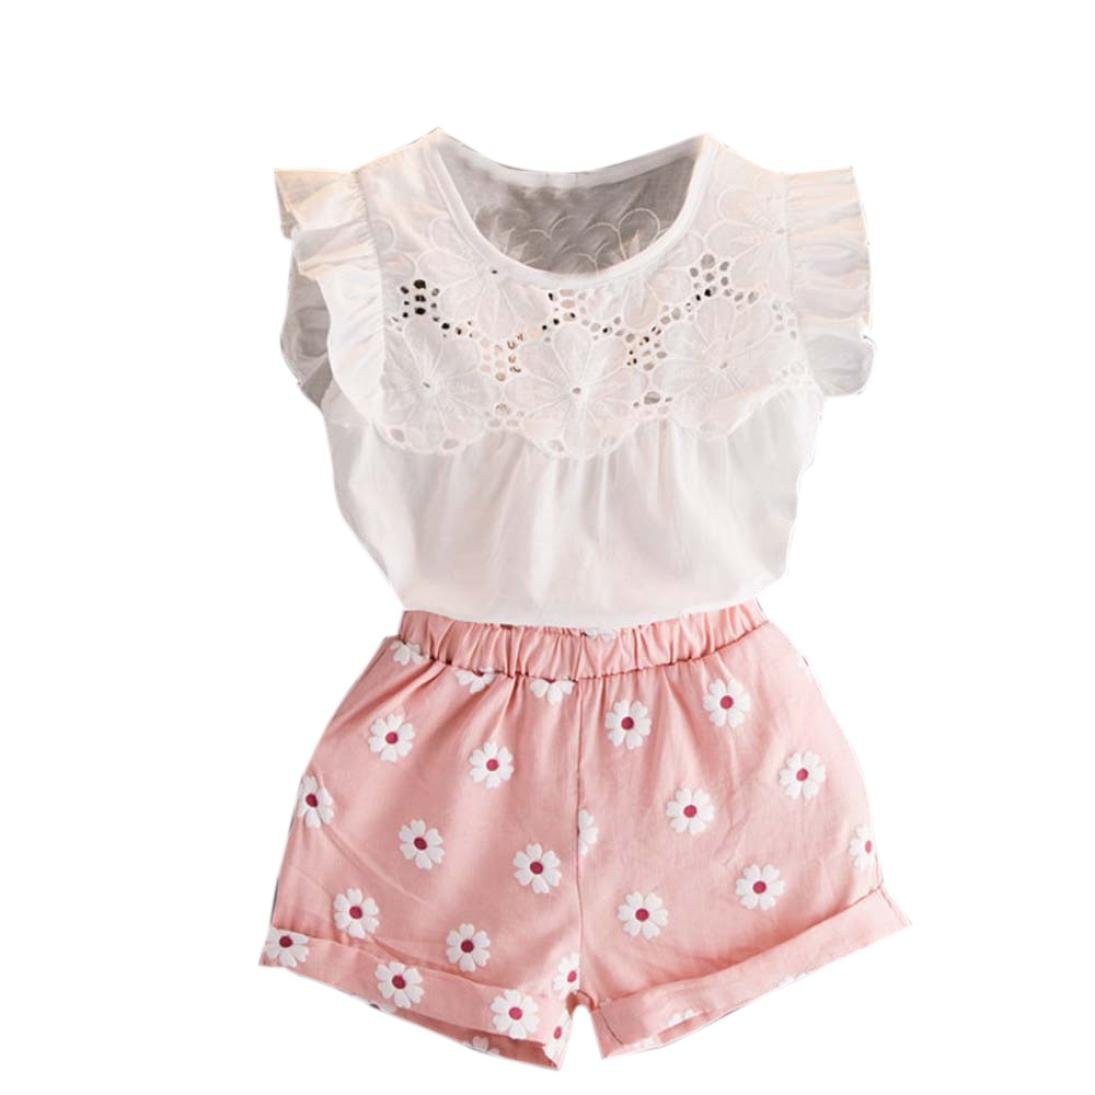 Vovotrade 2PCS Set Toddler Kids Baby Girls Outfits Clothes T-shirt Vest Tops+Shorts Pants (2T, Pink) by Vovotrade